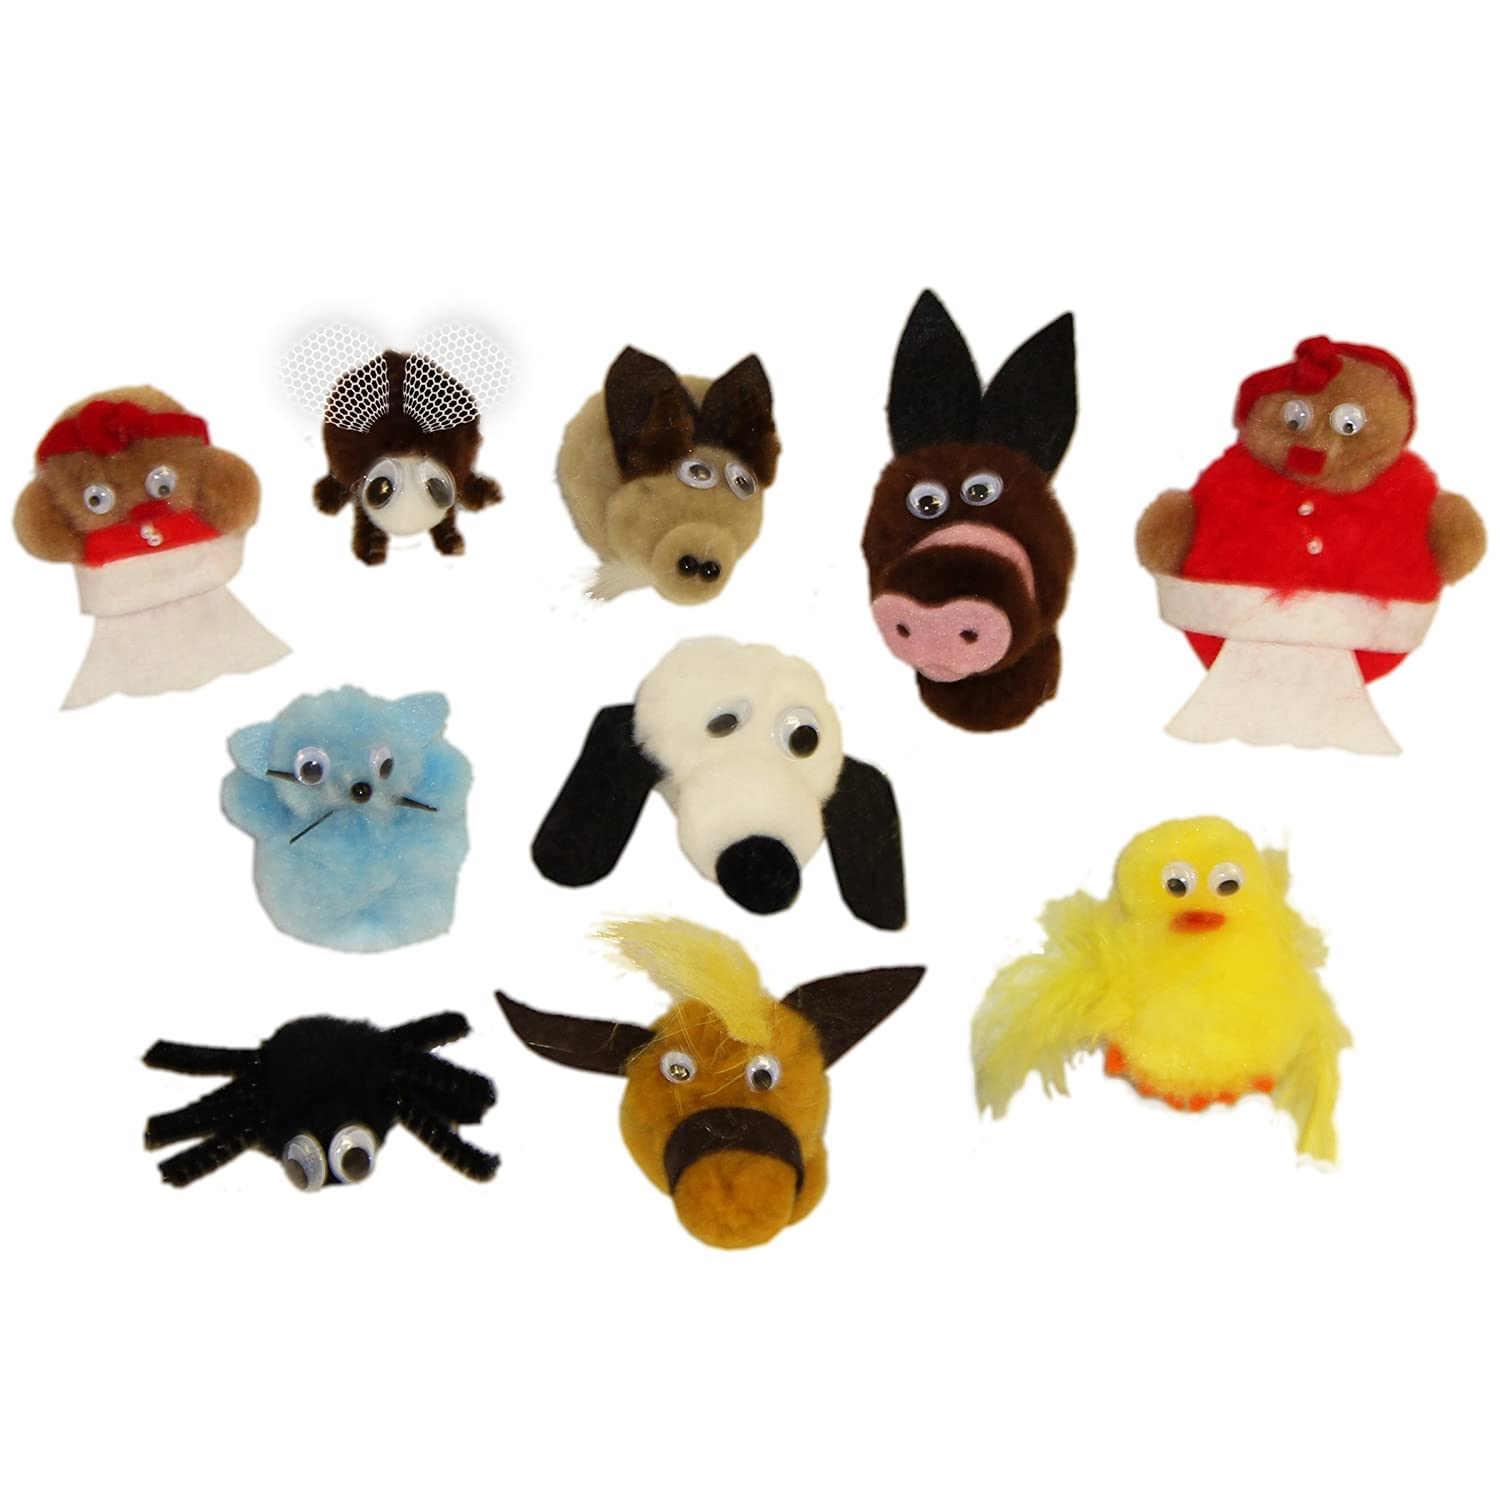 9 Length 5 Wide Pack of 10 1.5 Height Melody House WZ-503 There Was An Old Lady Who Swallowed A Fly Character Monkey Mitt Set without Mitt Grade Kindergarten to 1